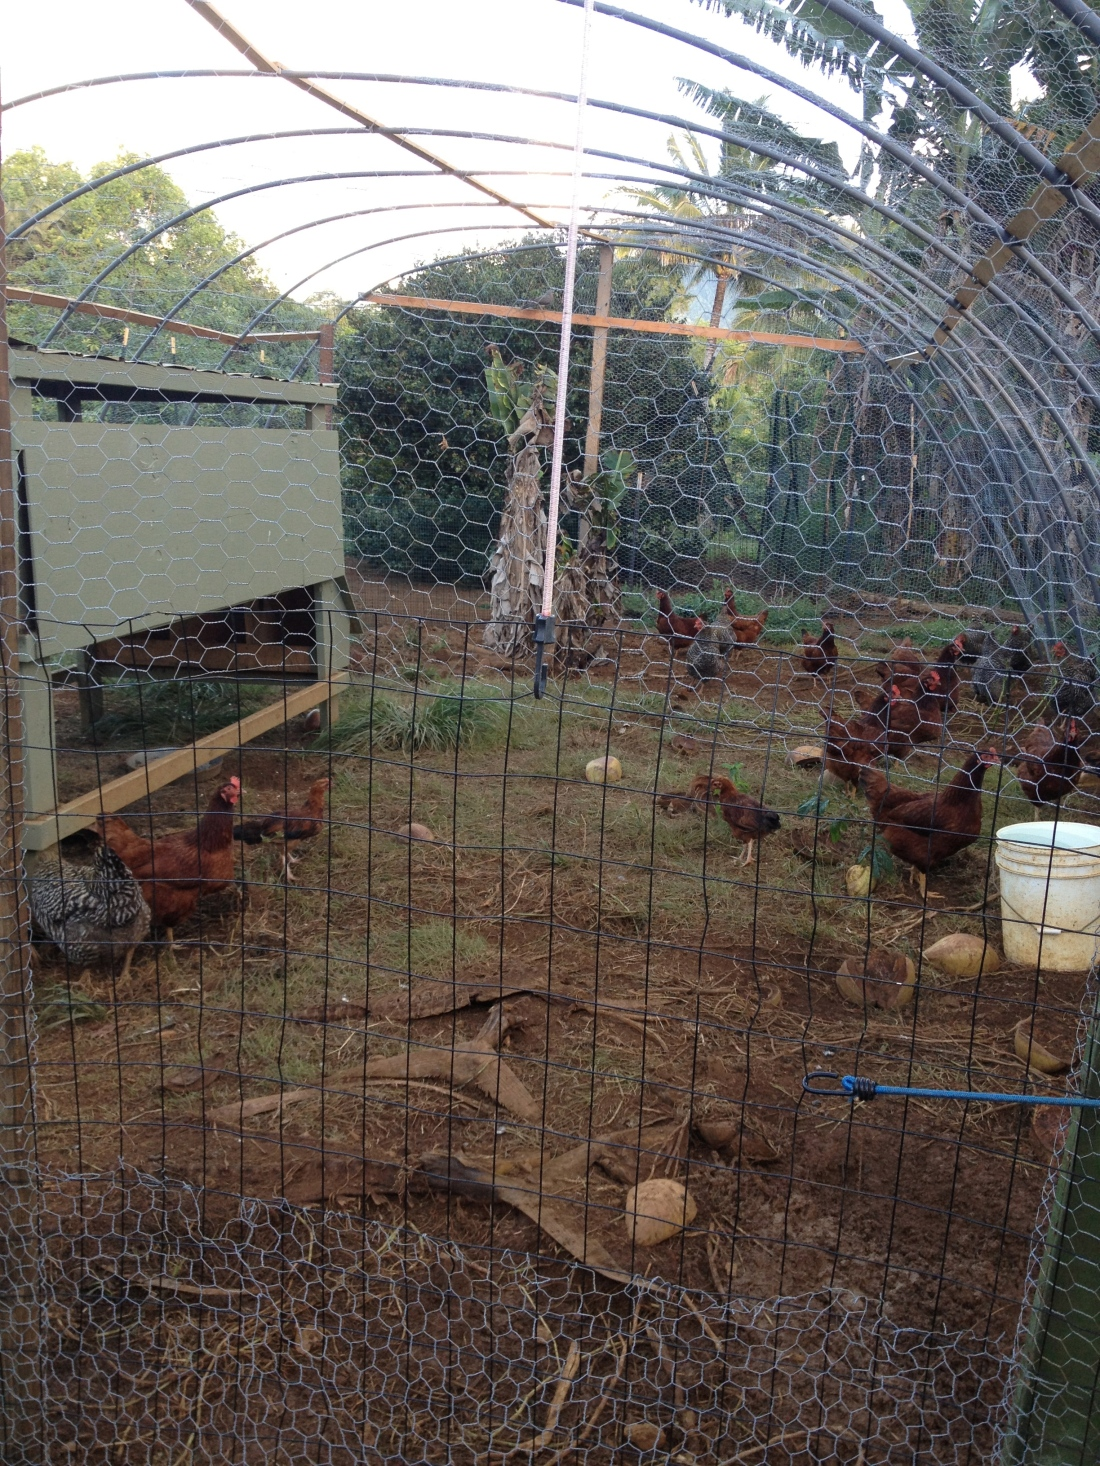 The chicken coup.